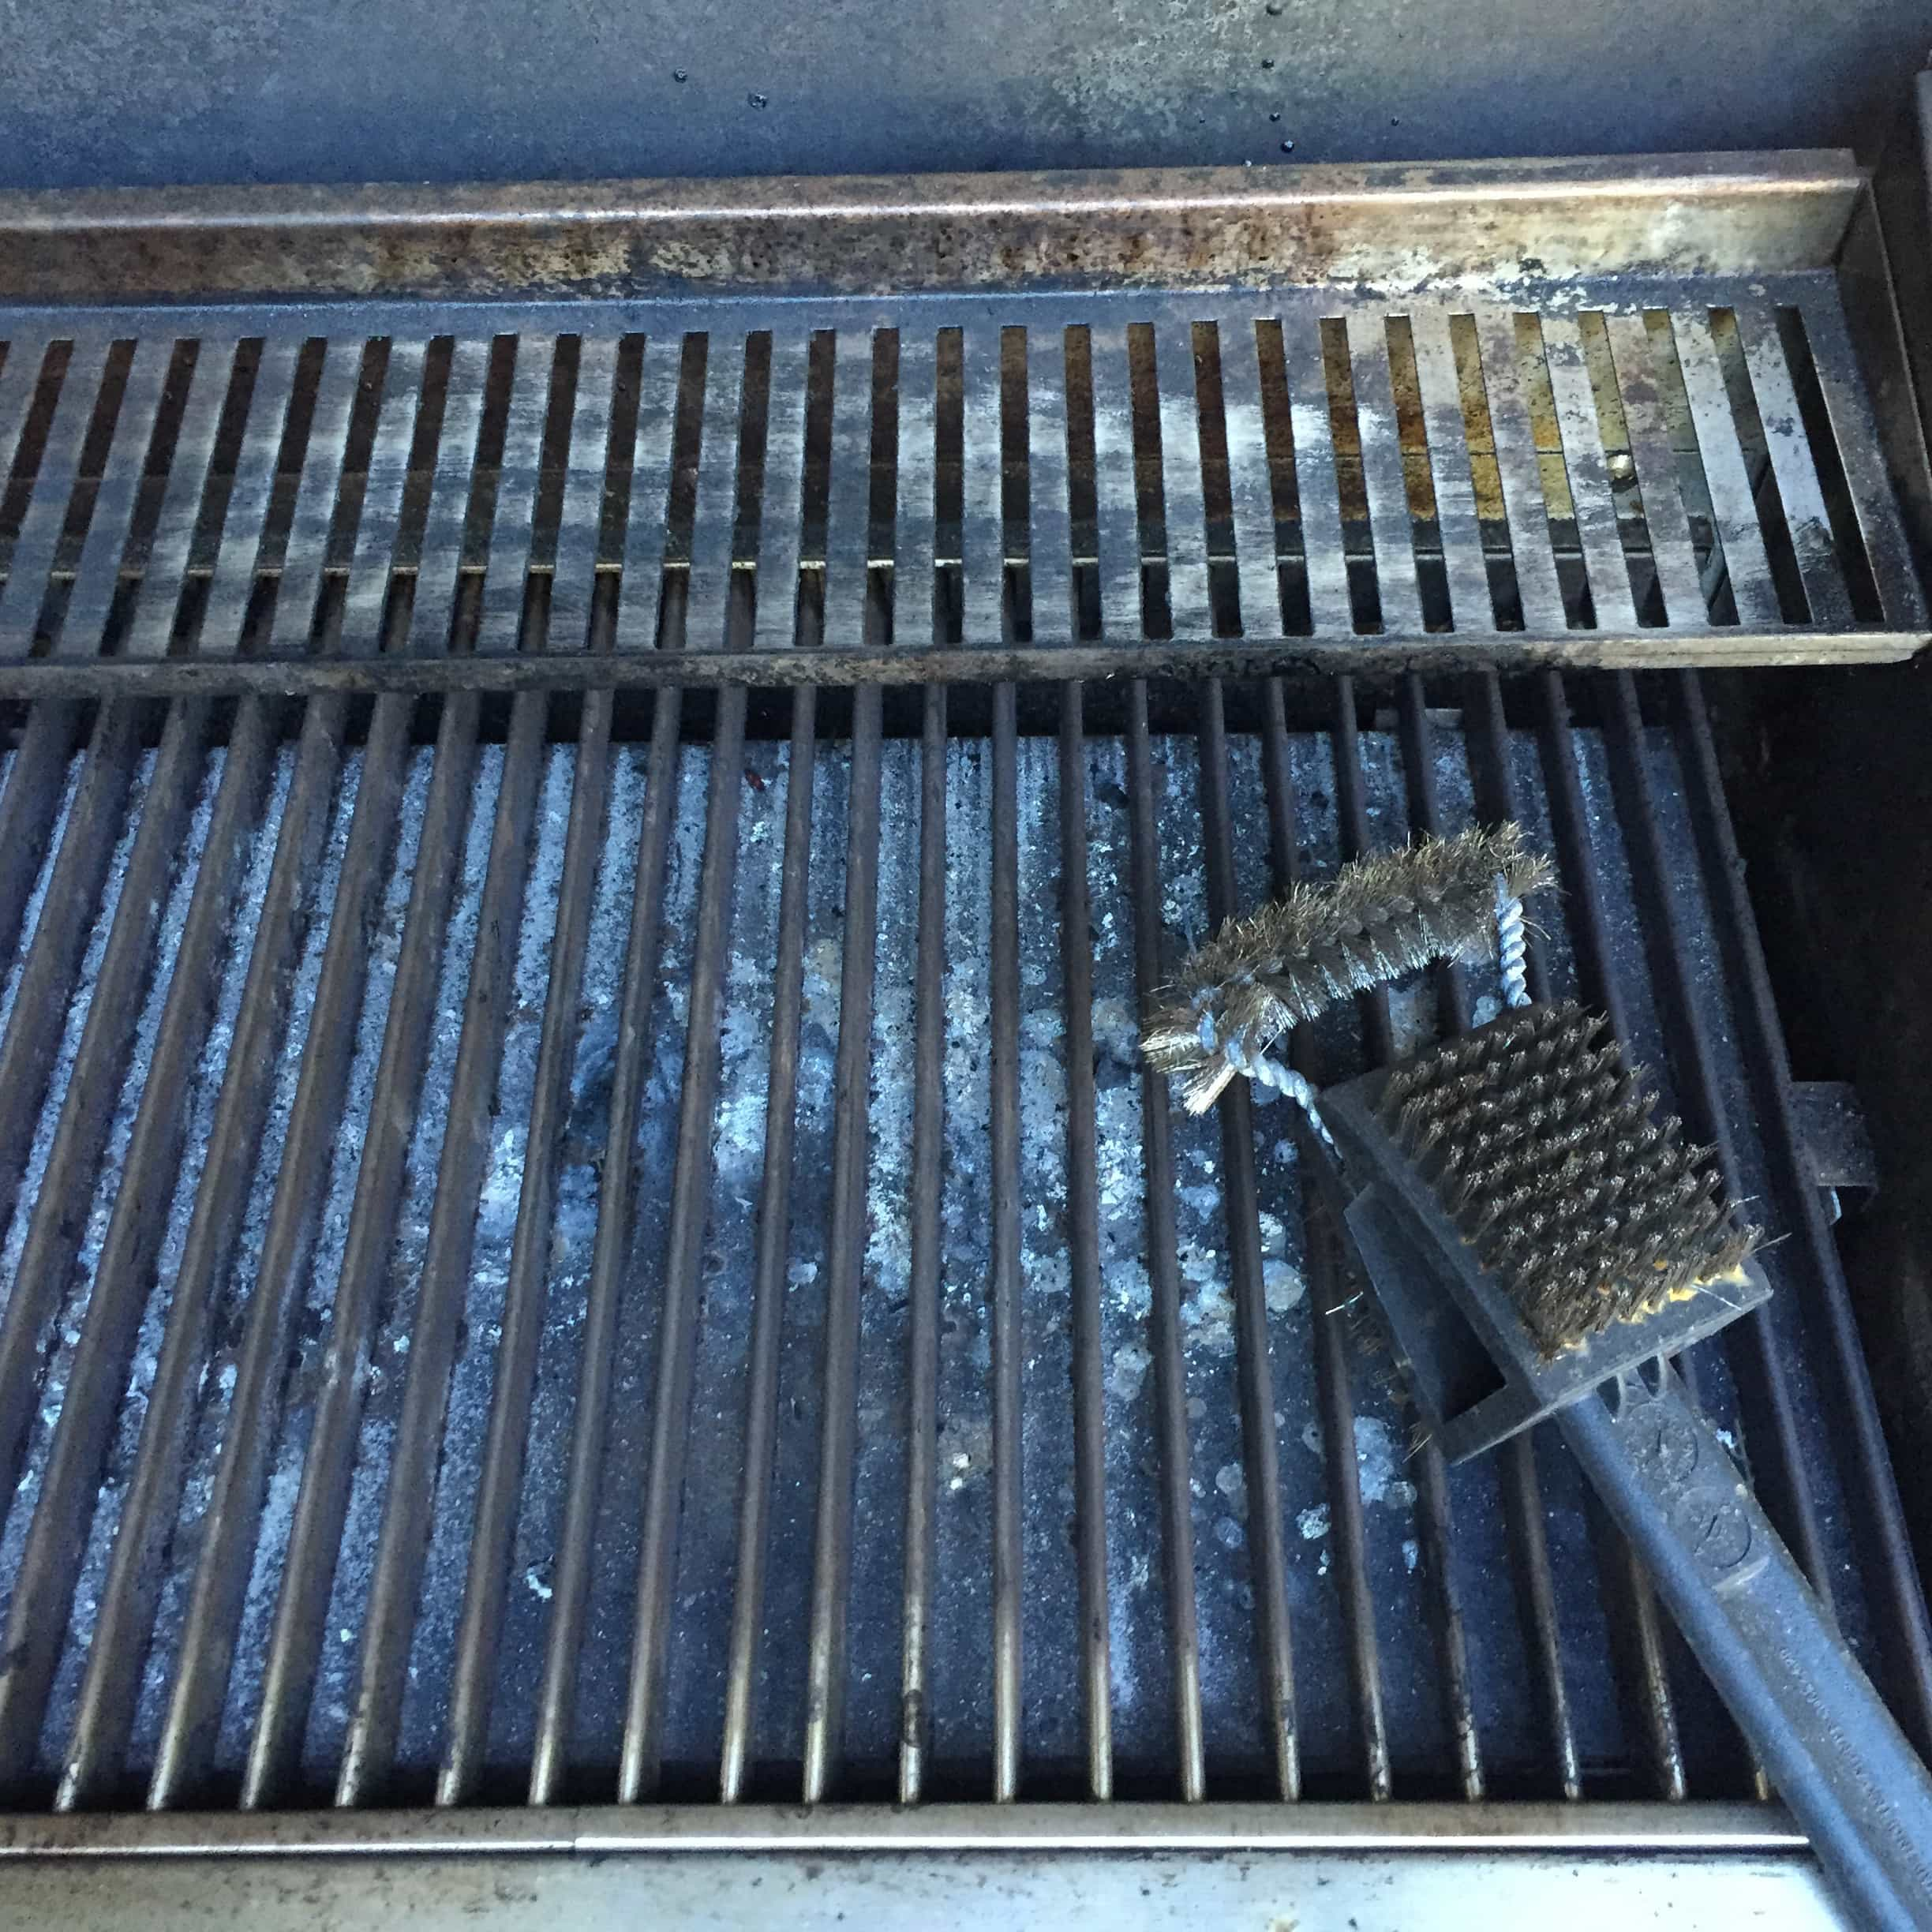 How to Clean Your TEC Grill v1 - TEC Infrared Grills